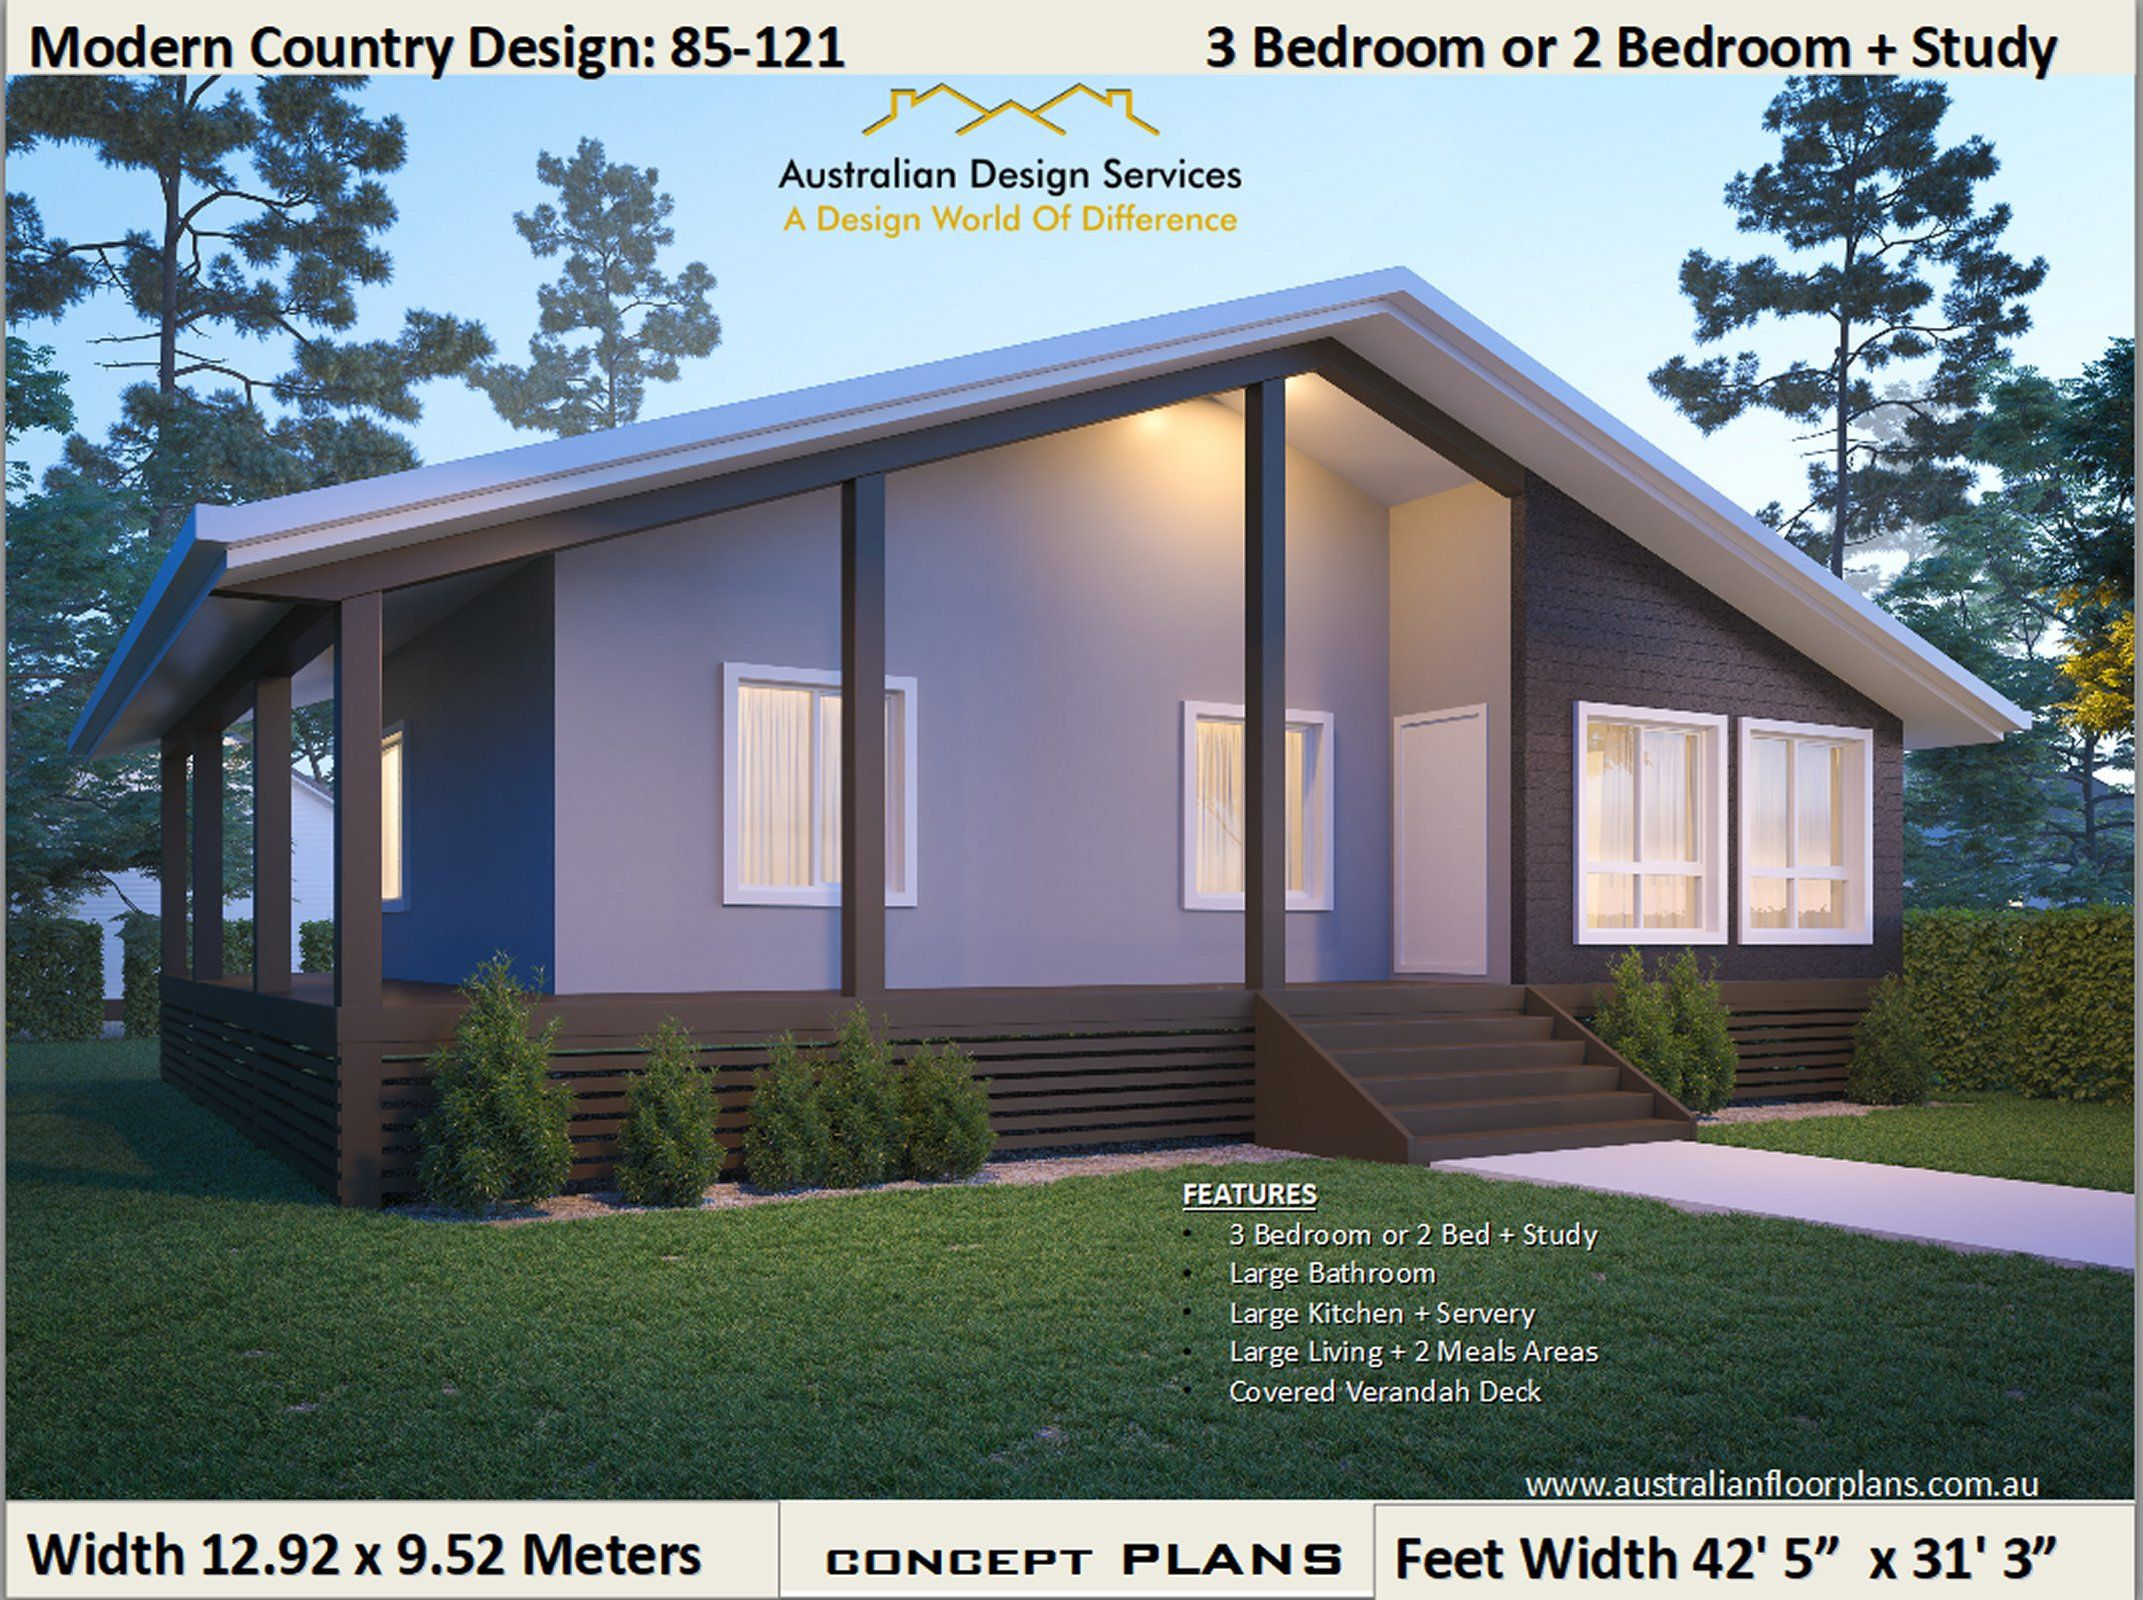 85 121 Clm 3 Bed Or 2 Bed Study Large Verandah Modern Etsy In 2021 House Plans For Sale Country House Design Mid Century Modern House Plans